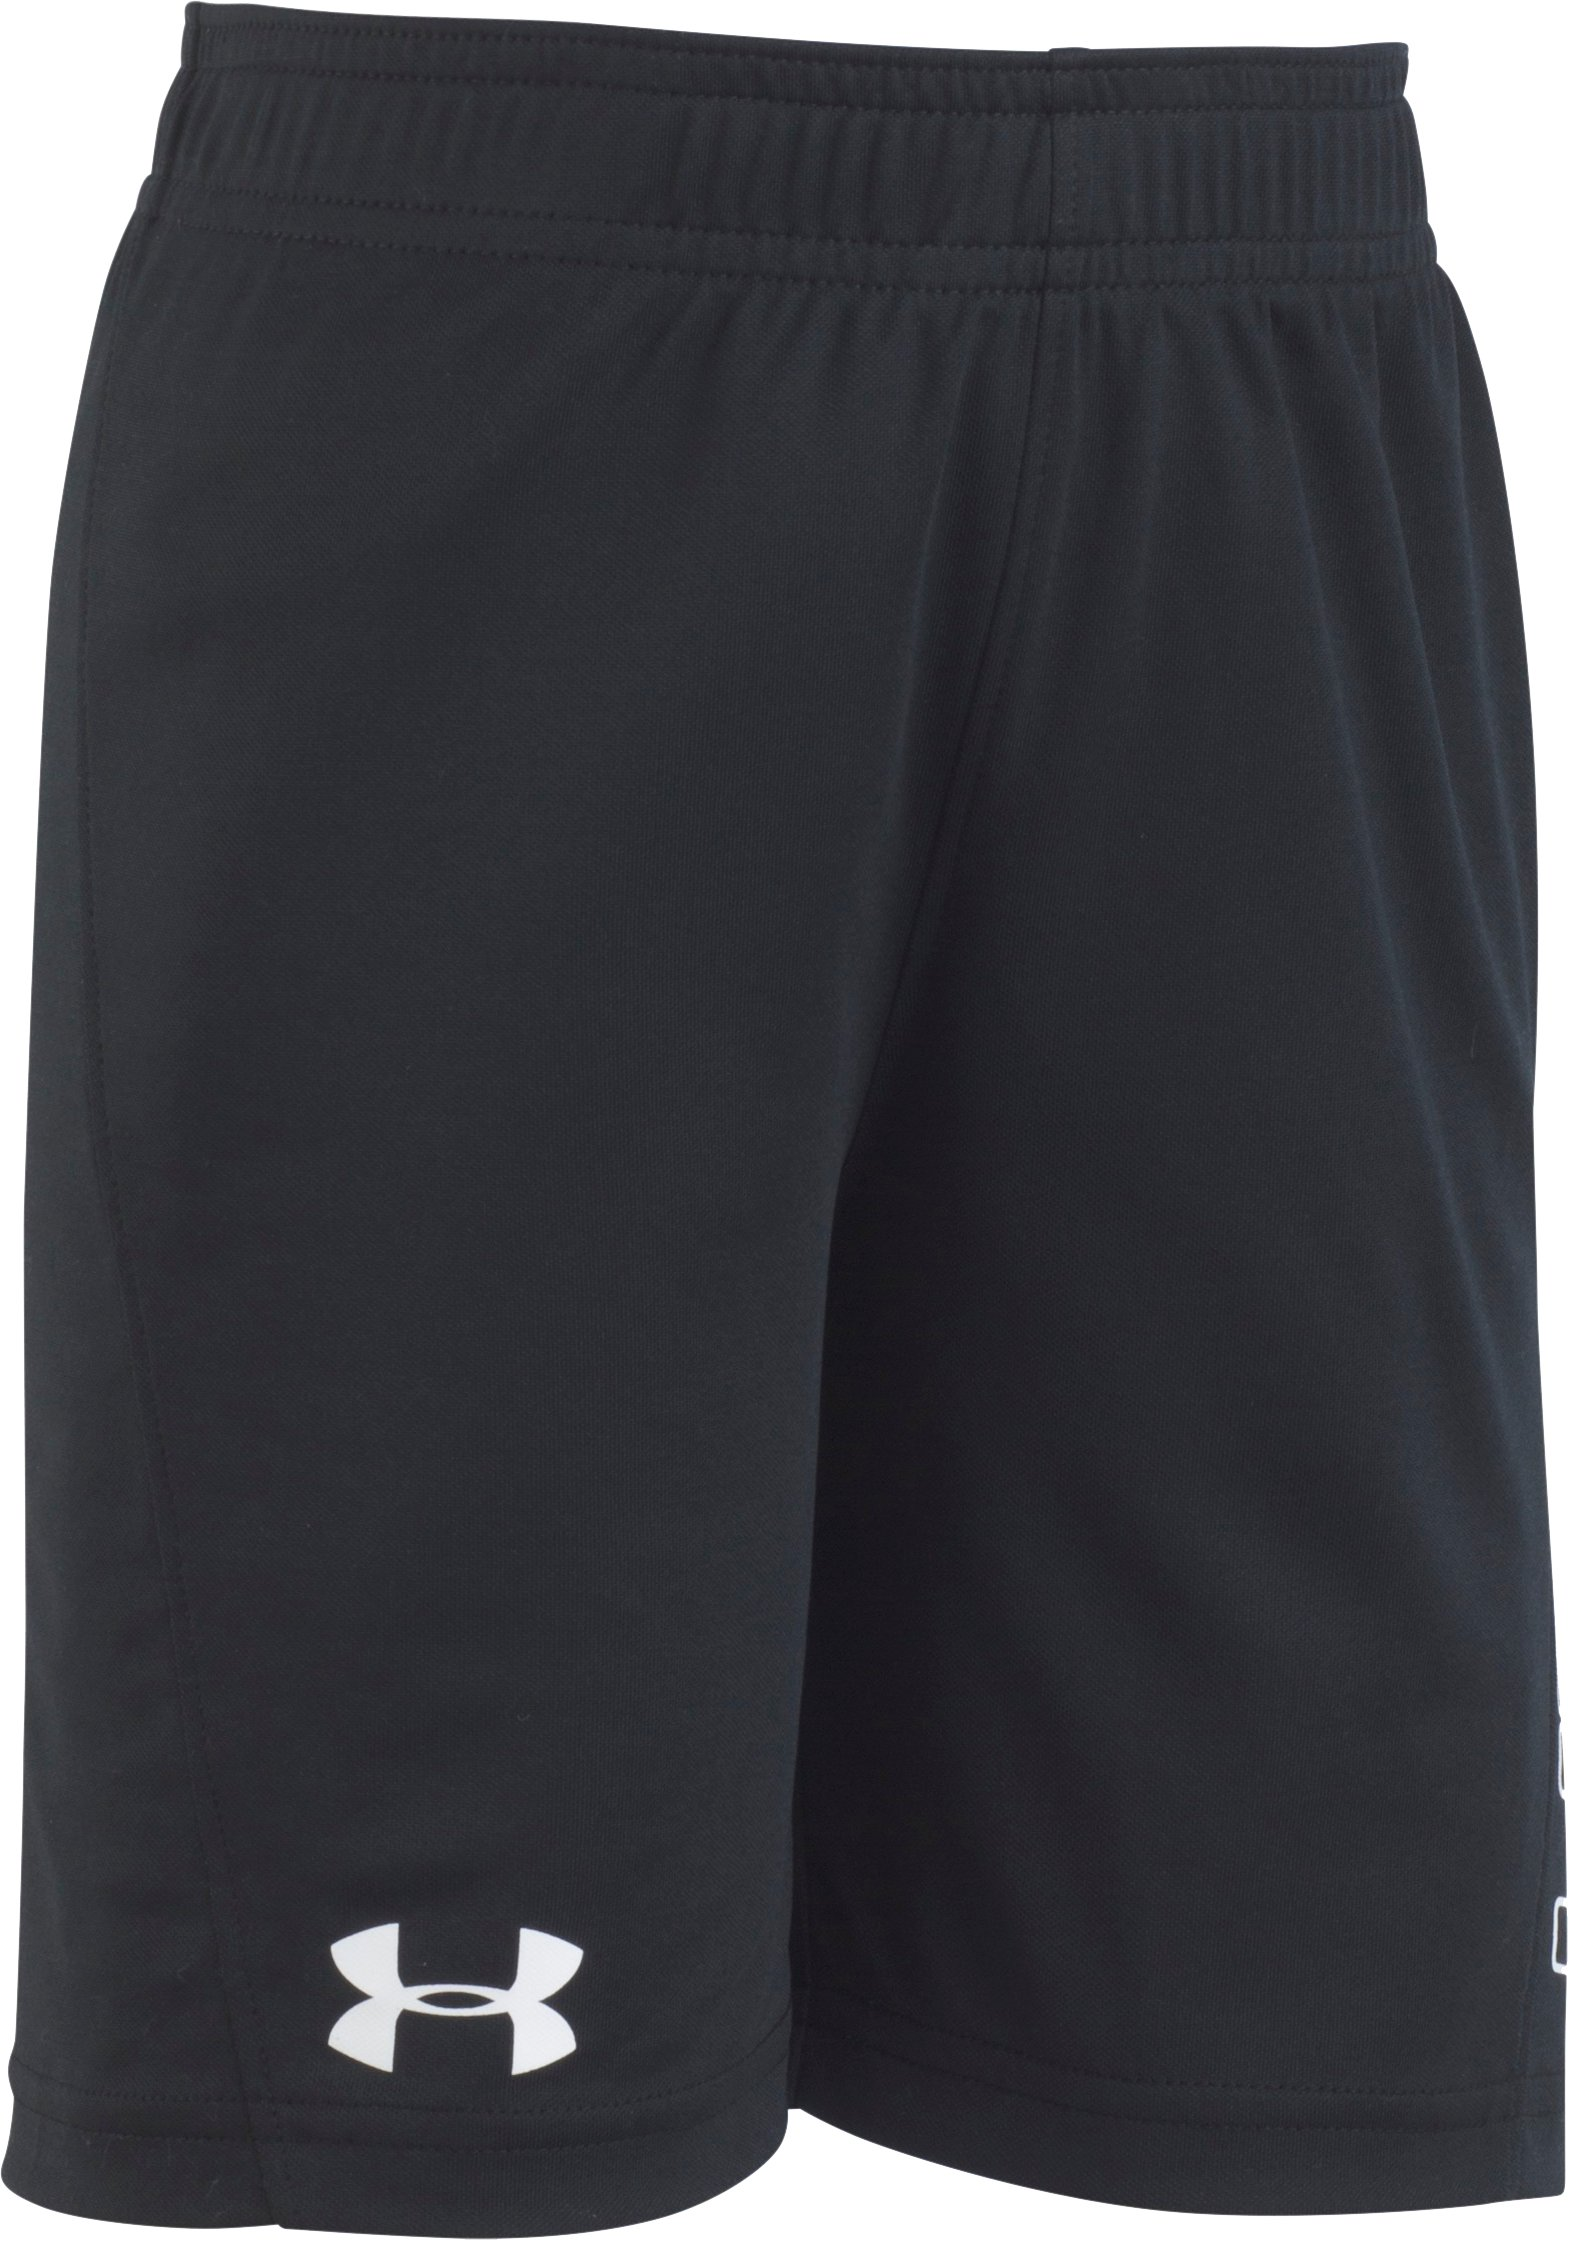 Kick Off Solid Short 4-7, Black , zoomed